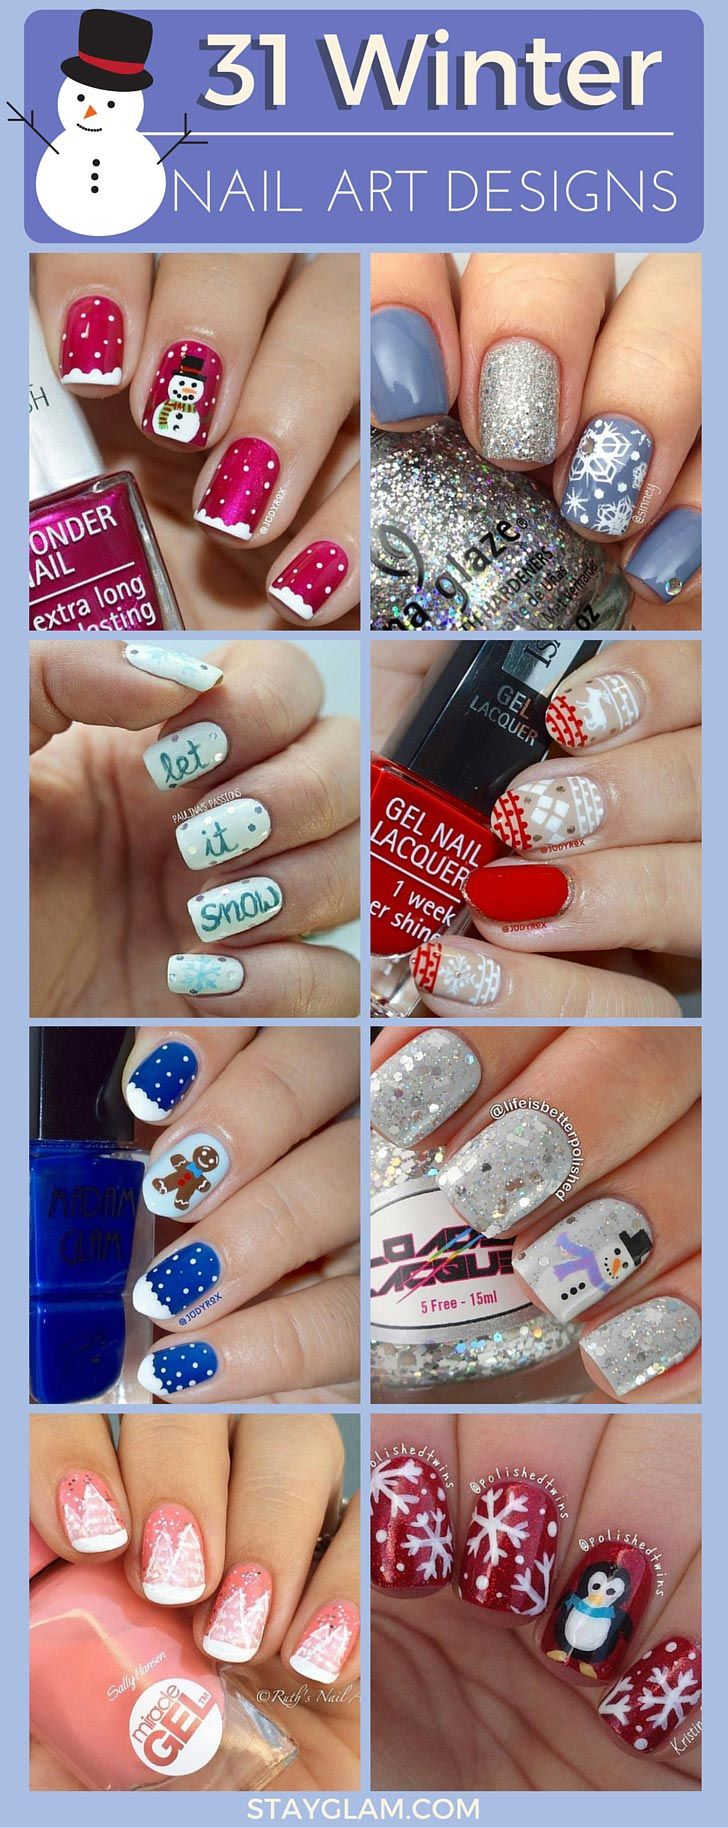 31 Cute Winter-Inspired Nail Art Designs | Diseños de uñas, Uñas ...